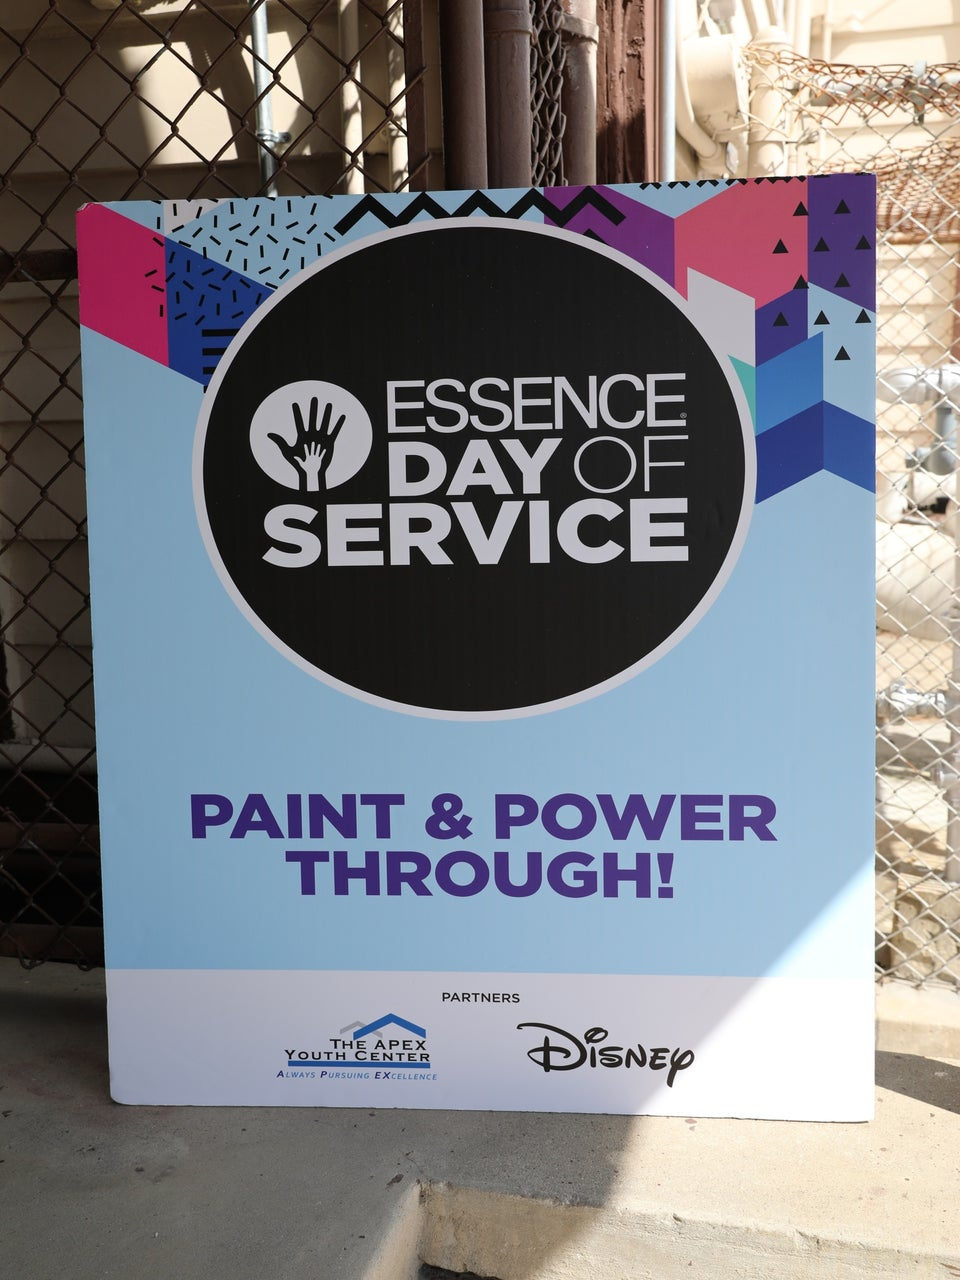 Disney Donates $25,000 To APEX Youth Center In New Orleans During ESSENCE Festival Day Of Service Event